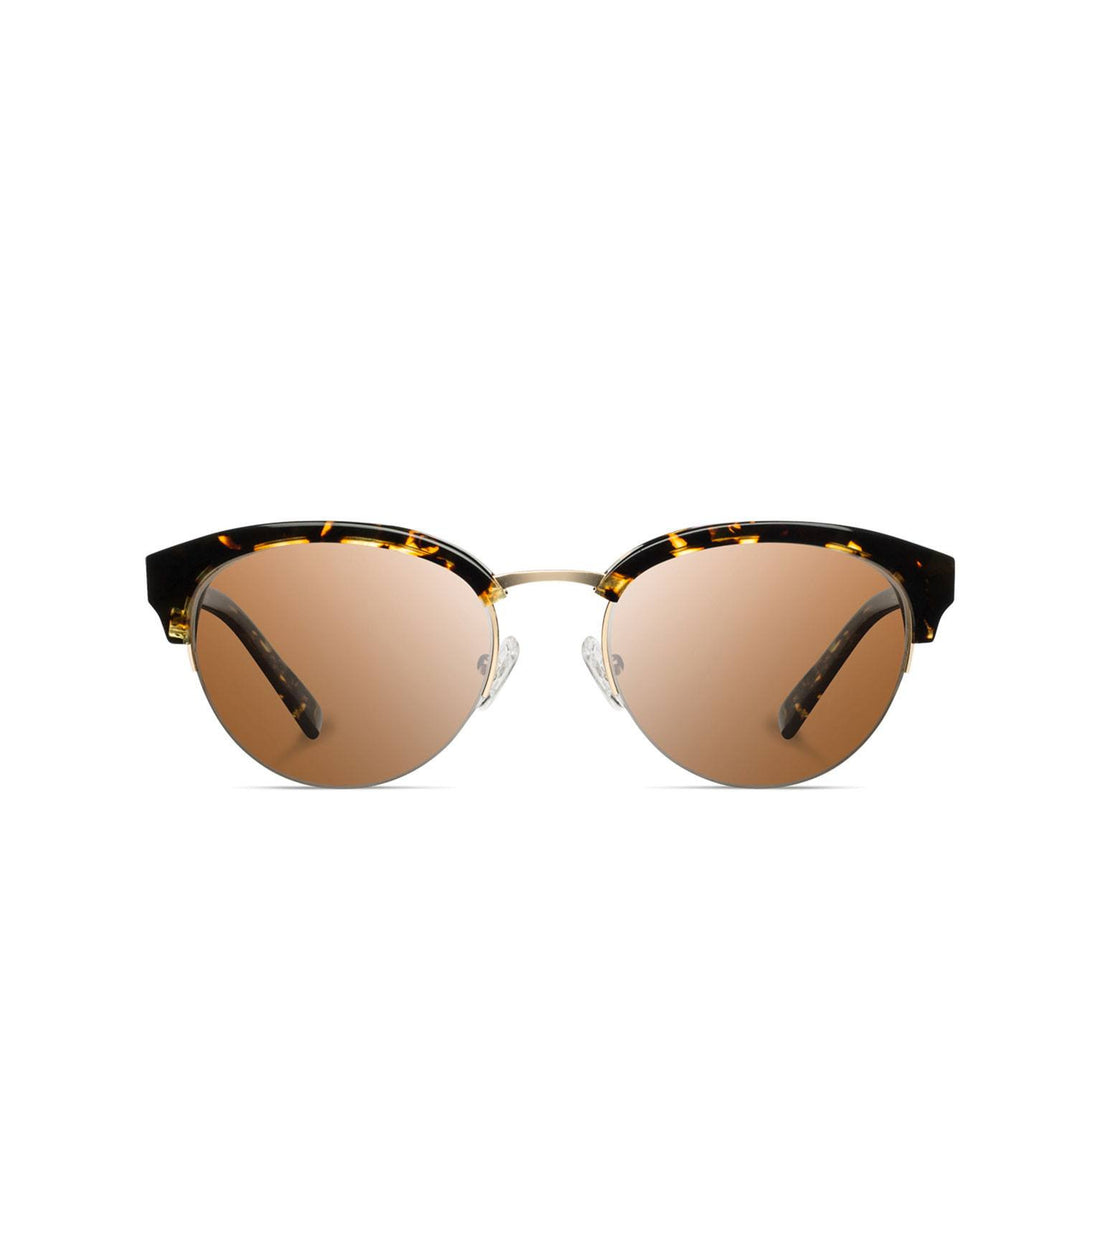 Shwood Hayden - Accessories: Eyewear - Iron and Resin